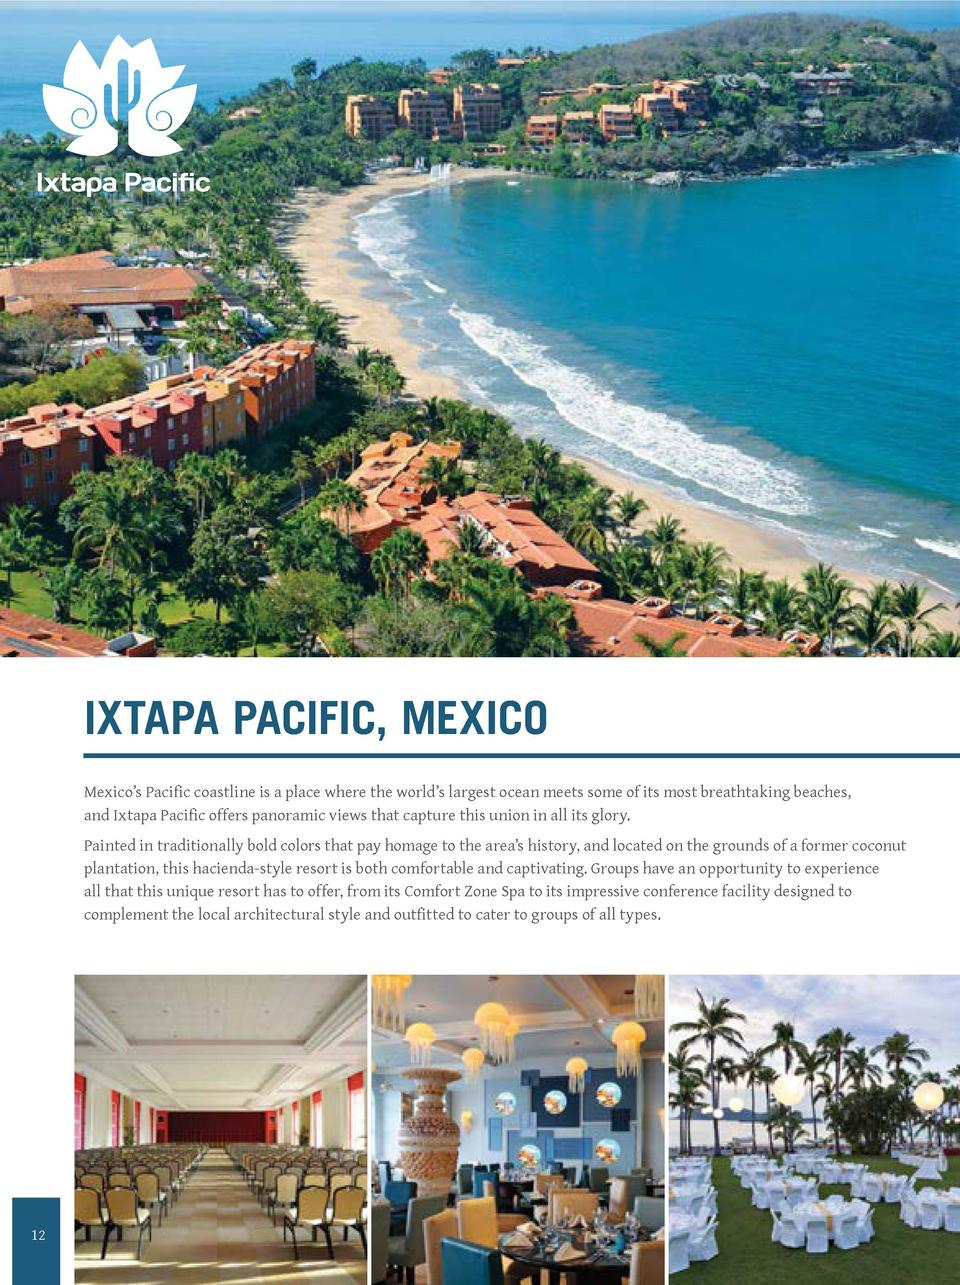 CLUB MED  PICTO IXTAPA PACIFIC BLANC  BLANC  N   dossier   20131186E Date   23 07 2014 AD CD validation   Client validatio...